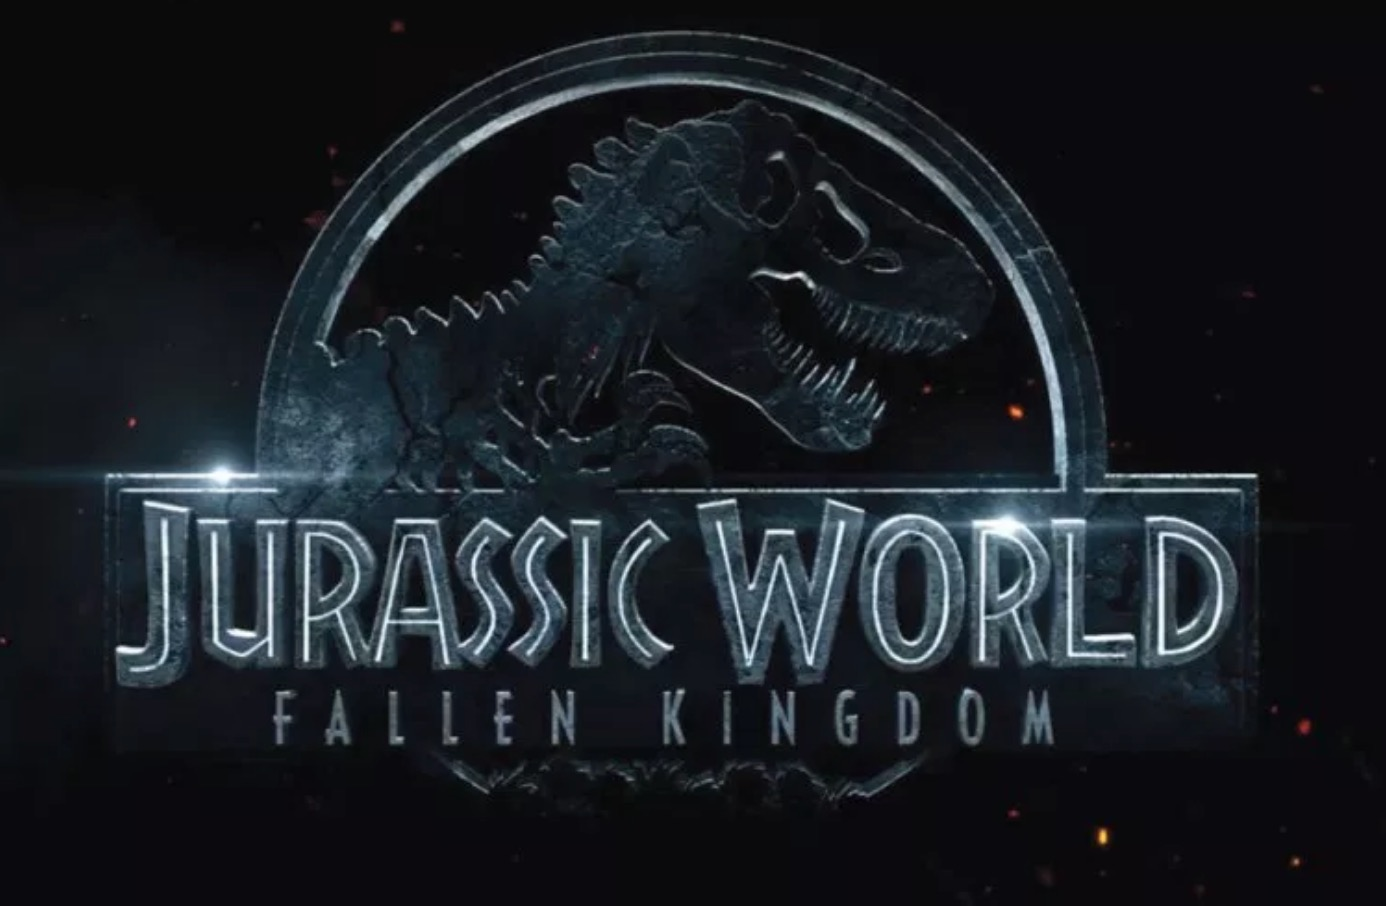 jurassic world fallen kingdom – review